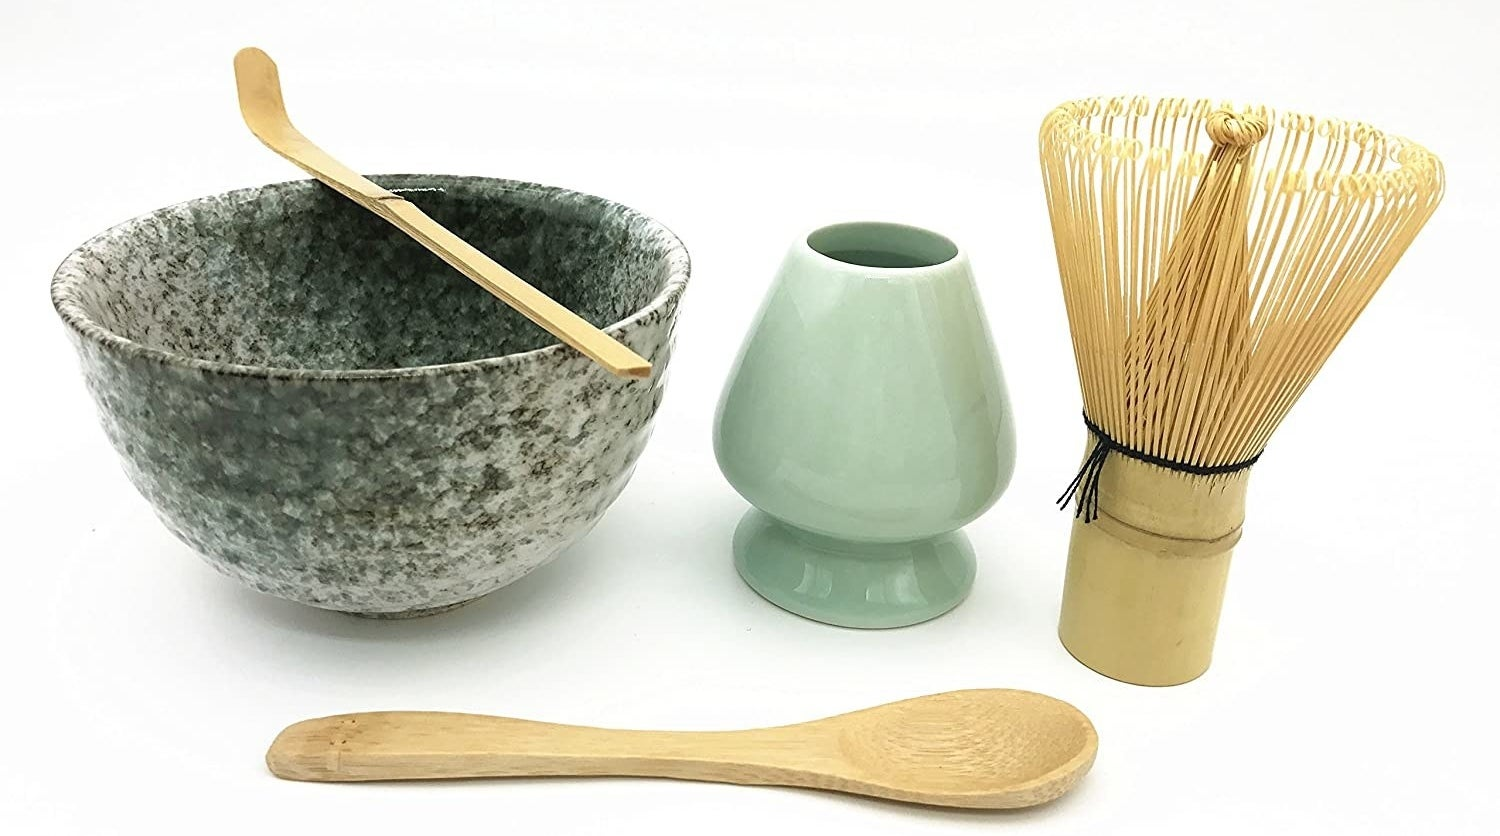 The matcha set which comes with ceramic and bamboo utensils